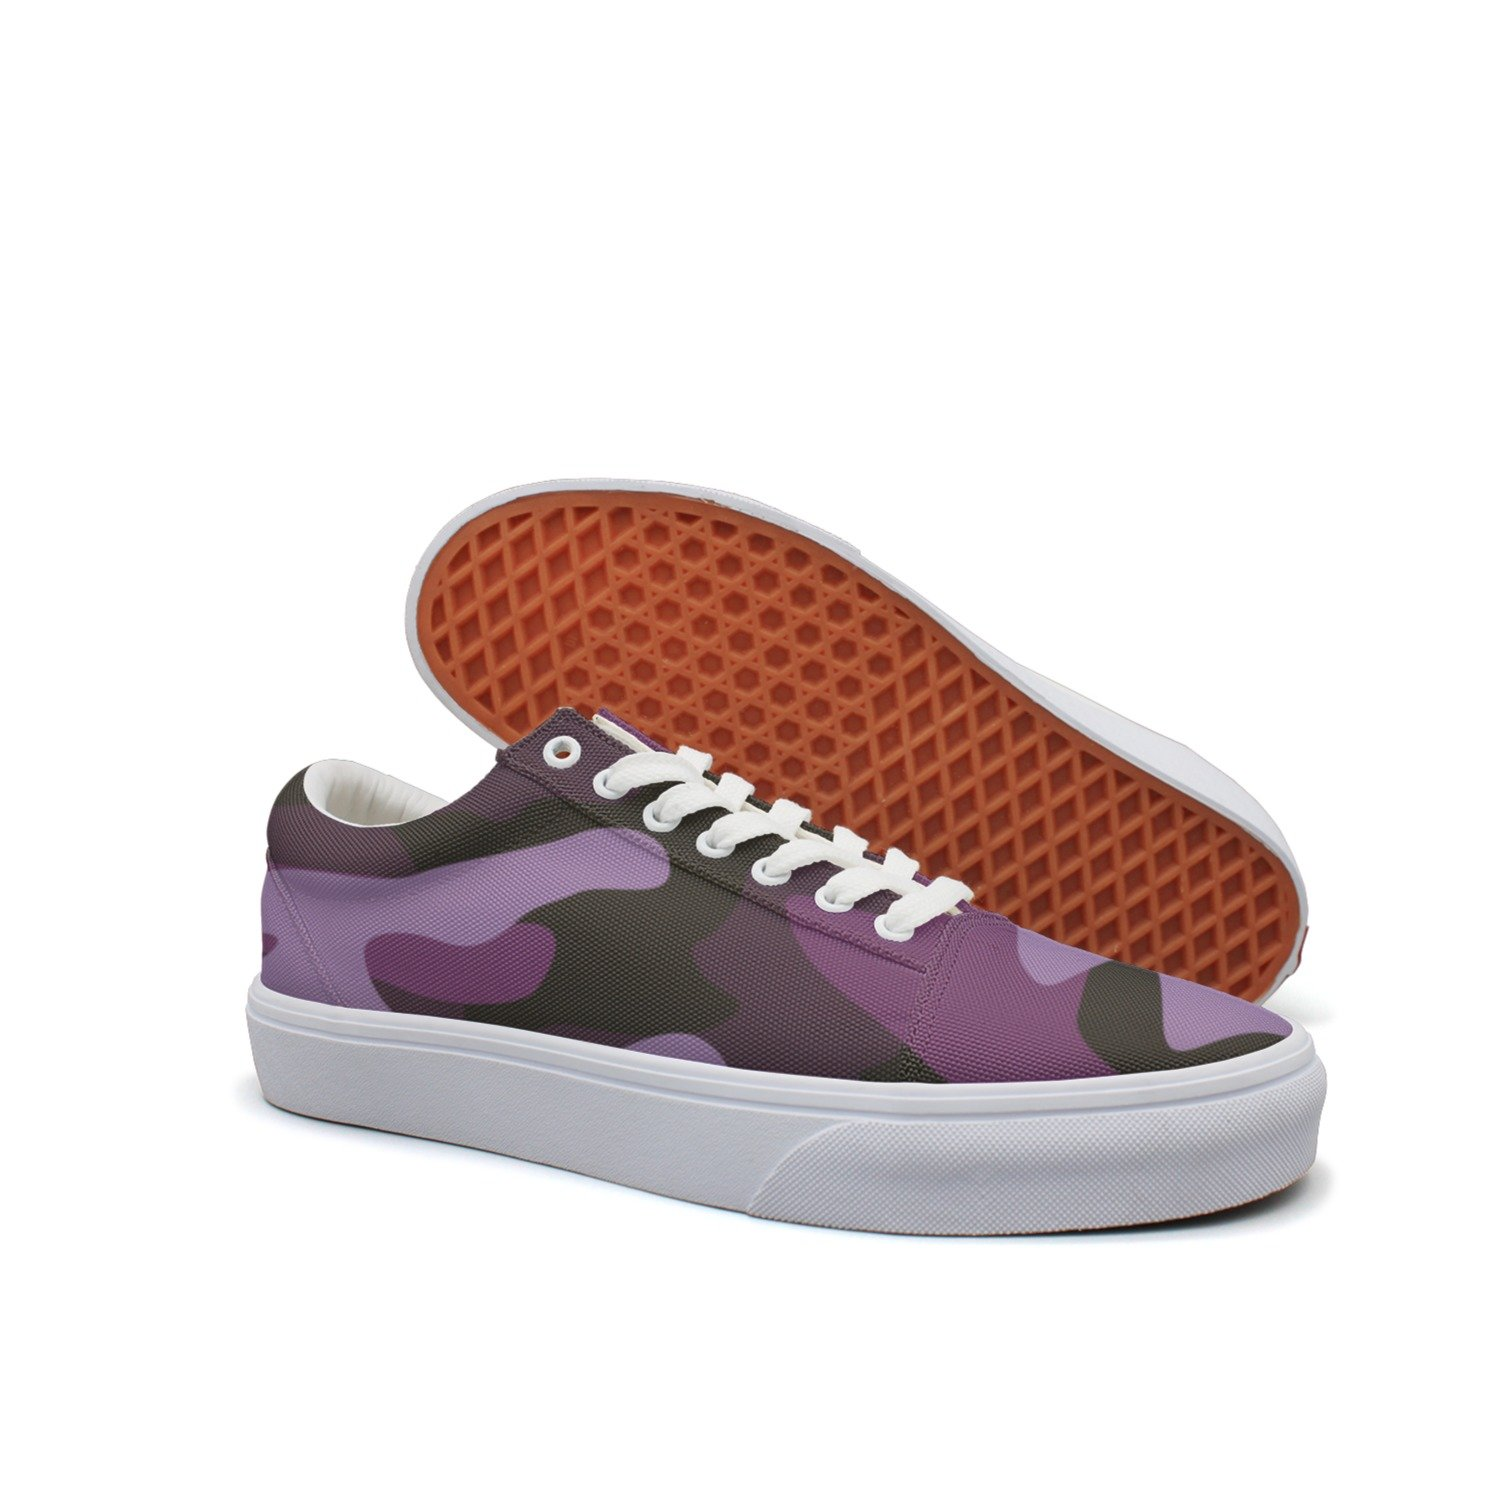 f51443696e047 Amazon.com: VCERTHDF Print Trendy Classic Camouflage Camo Purple Low Top  Canvas Sneakers: Sports & Outdoors